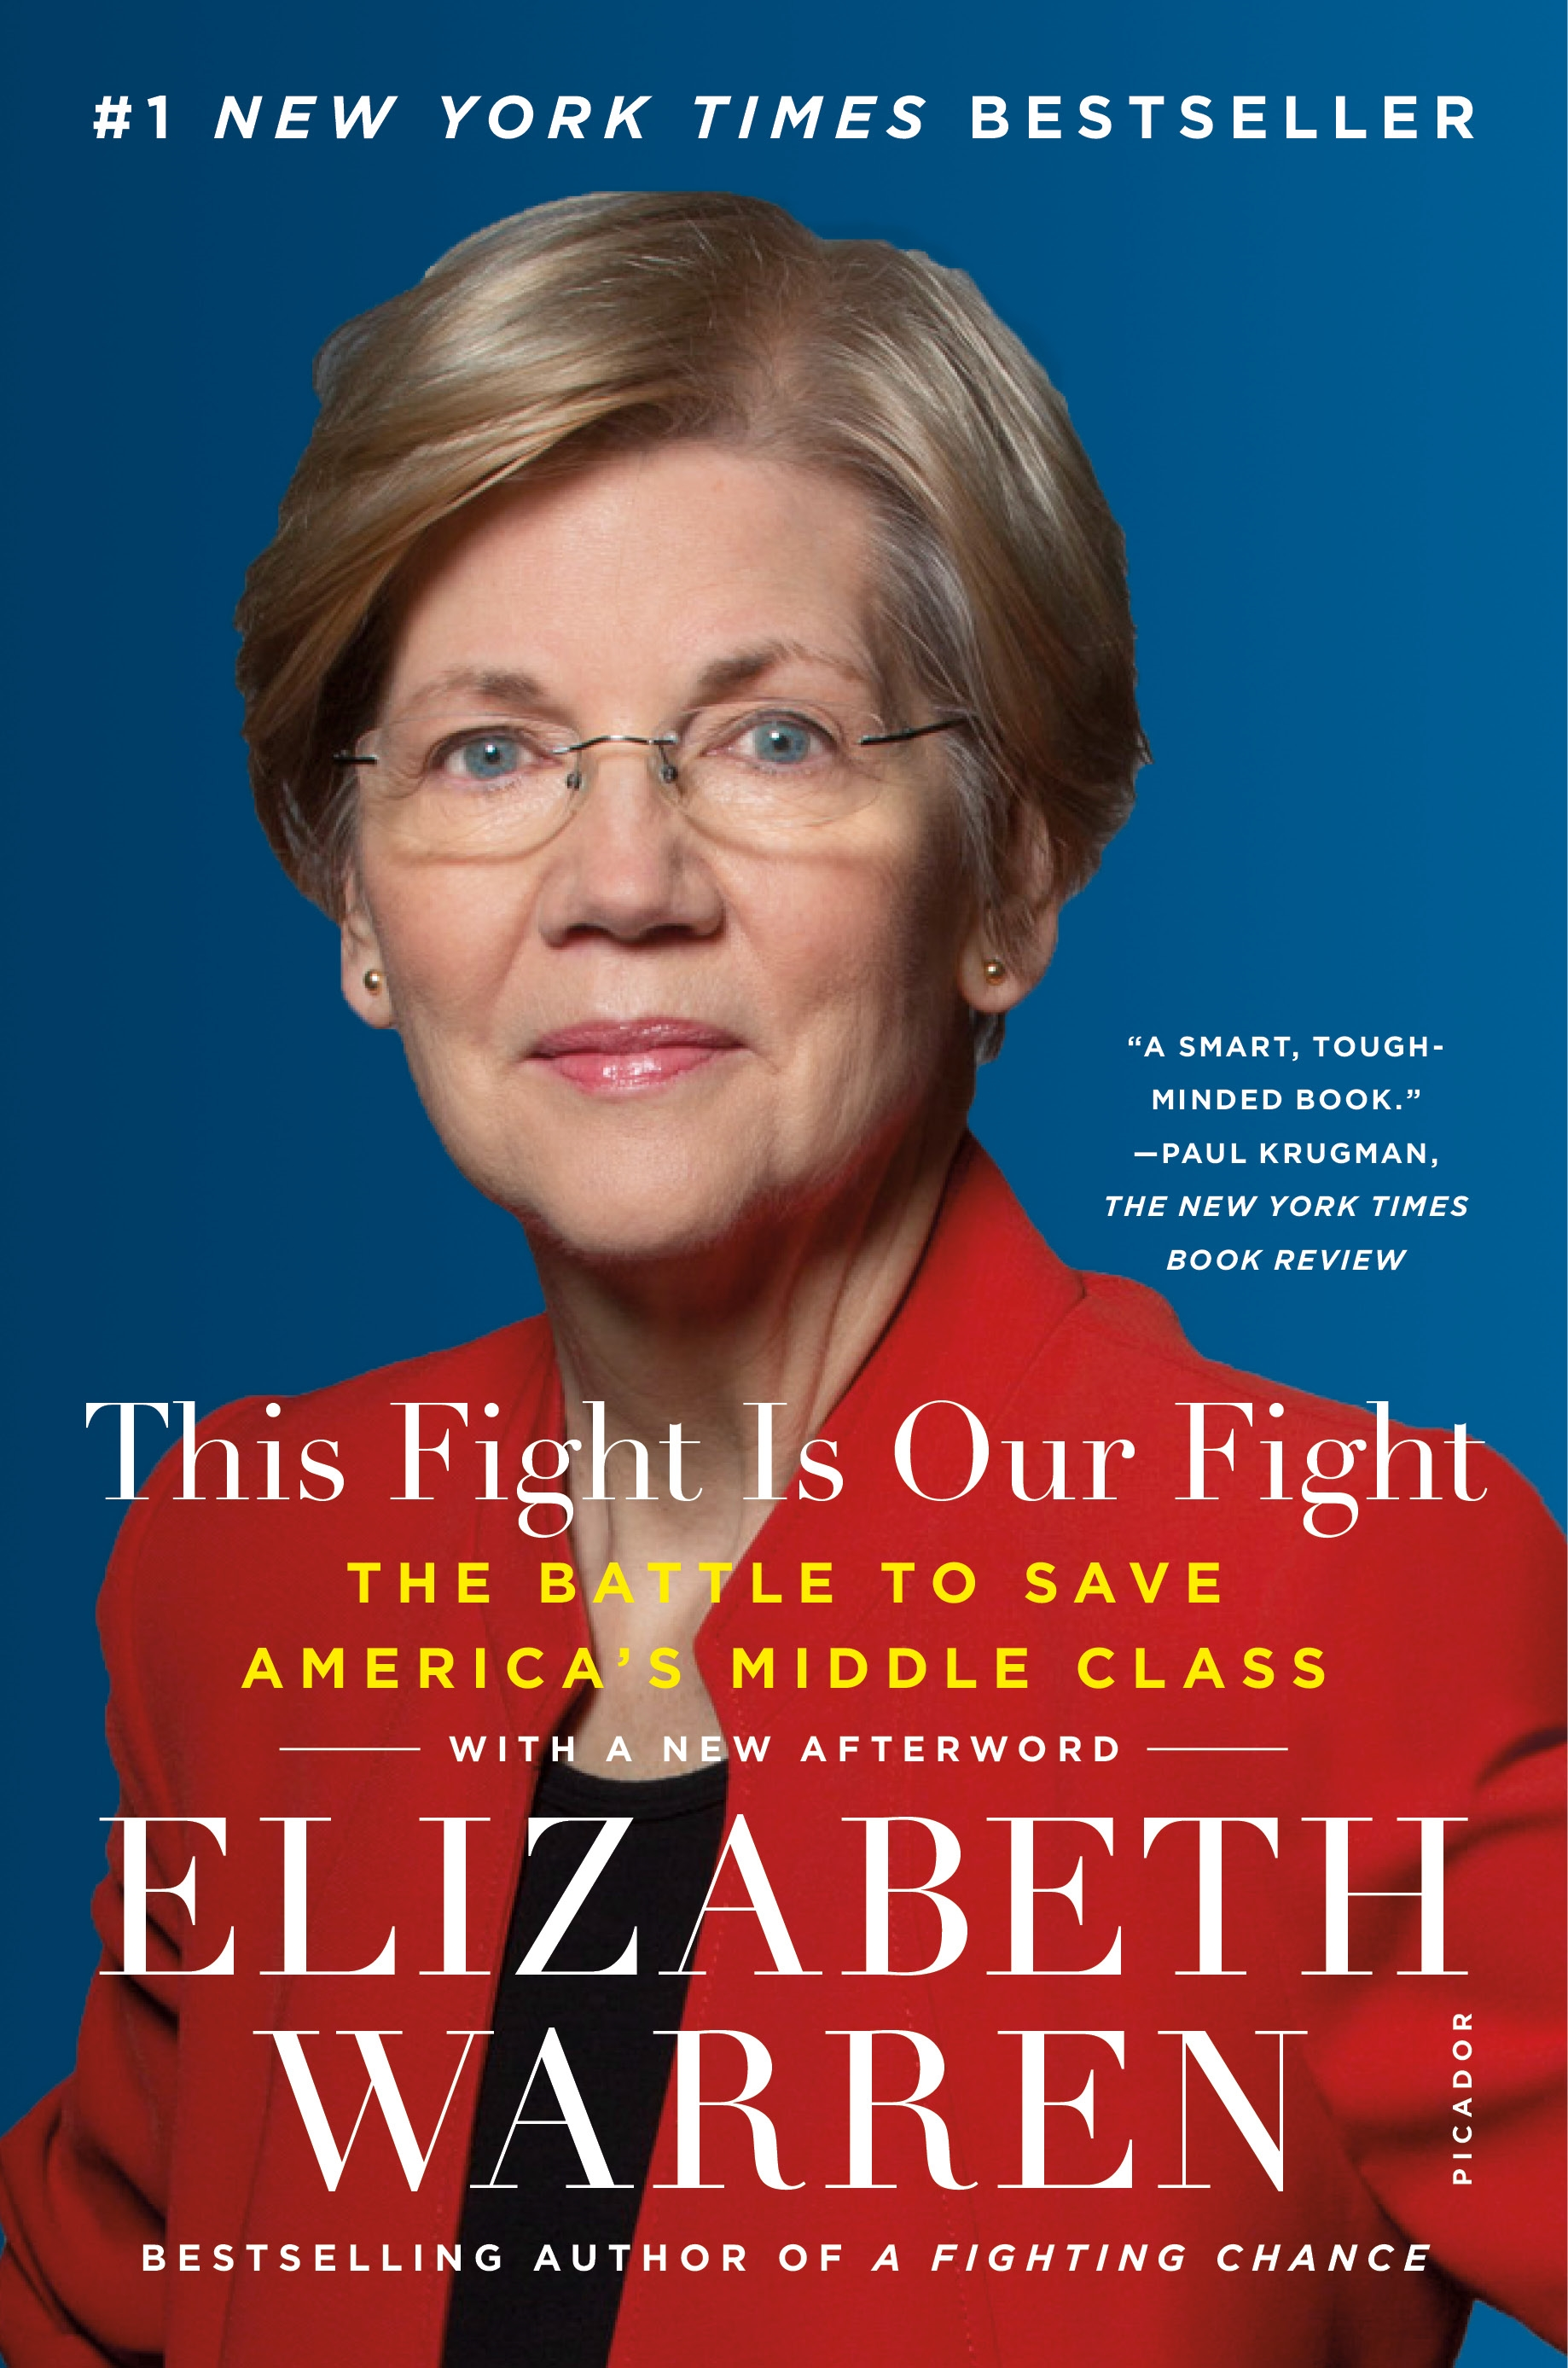 This Fight Is Our Fight [EBOOK] The Battle to Save America's Middle Class